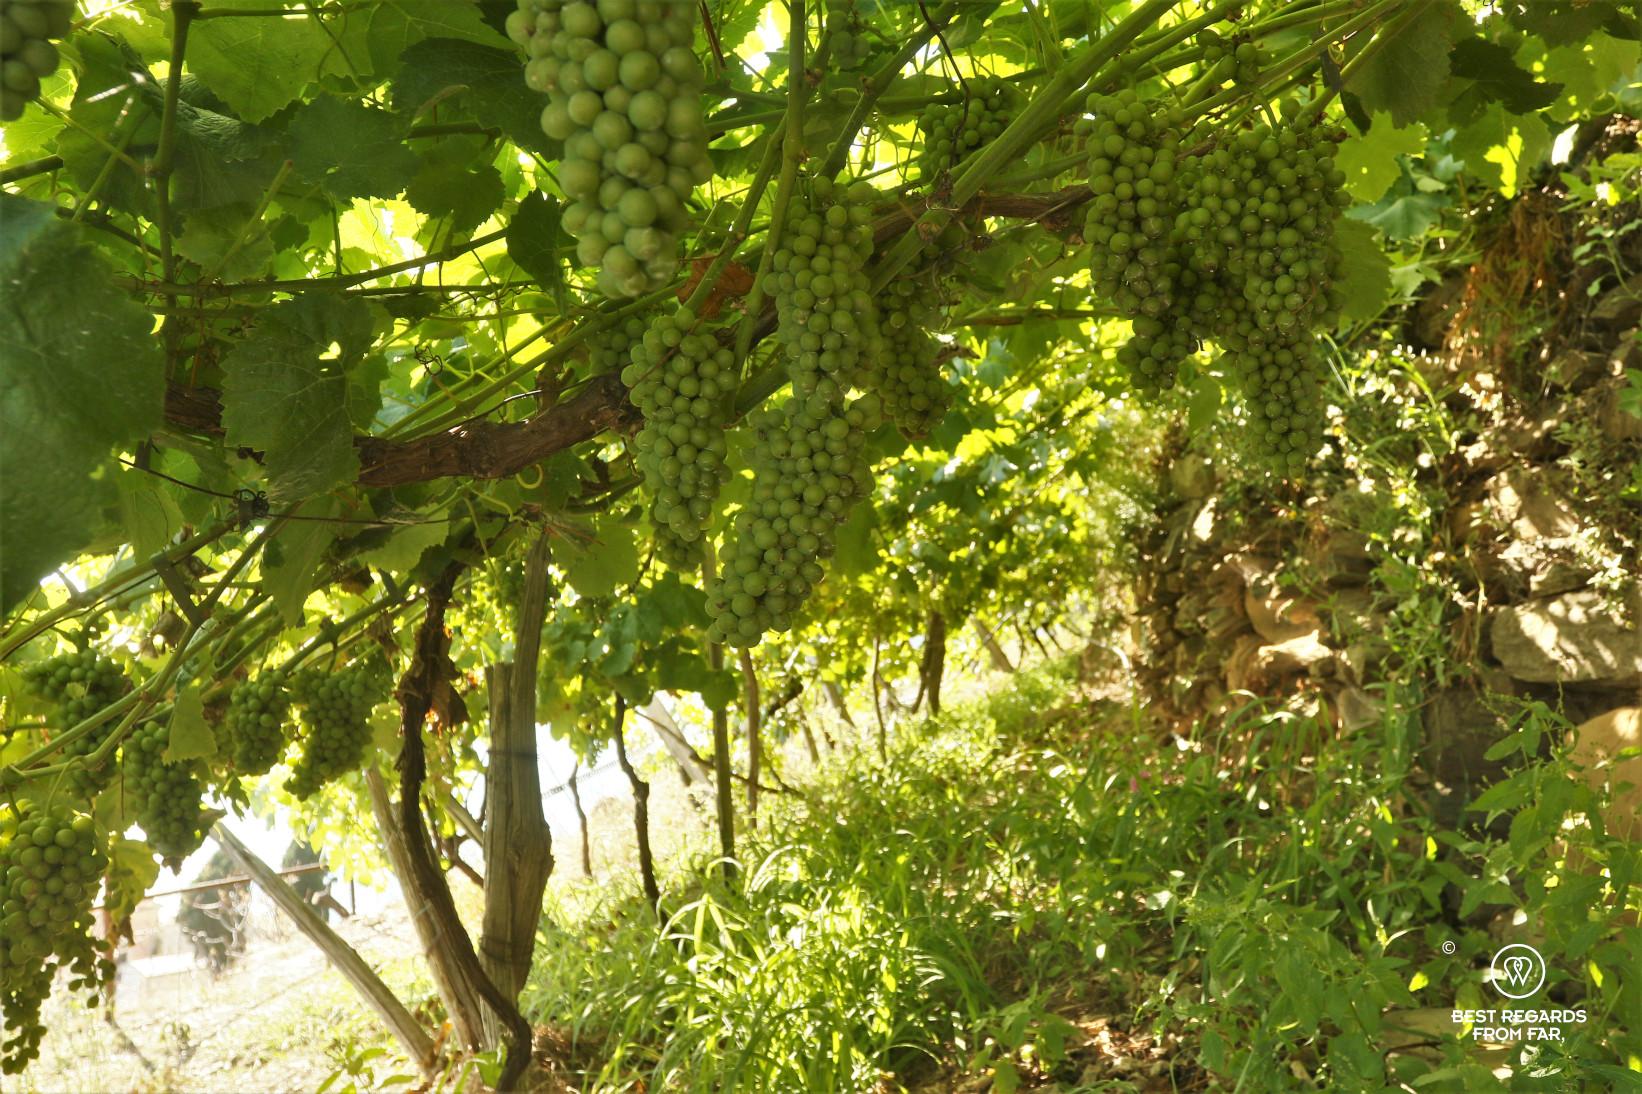 Green grapes in the vineyards of Manerola, Cinque Terre